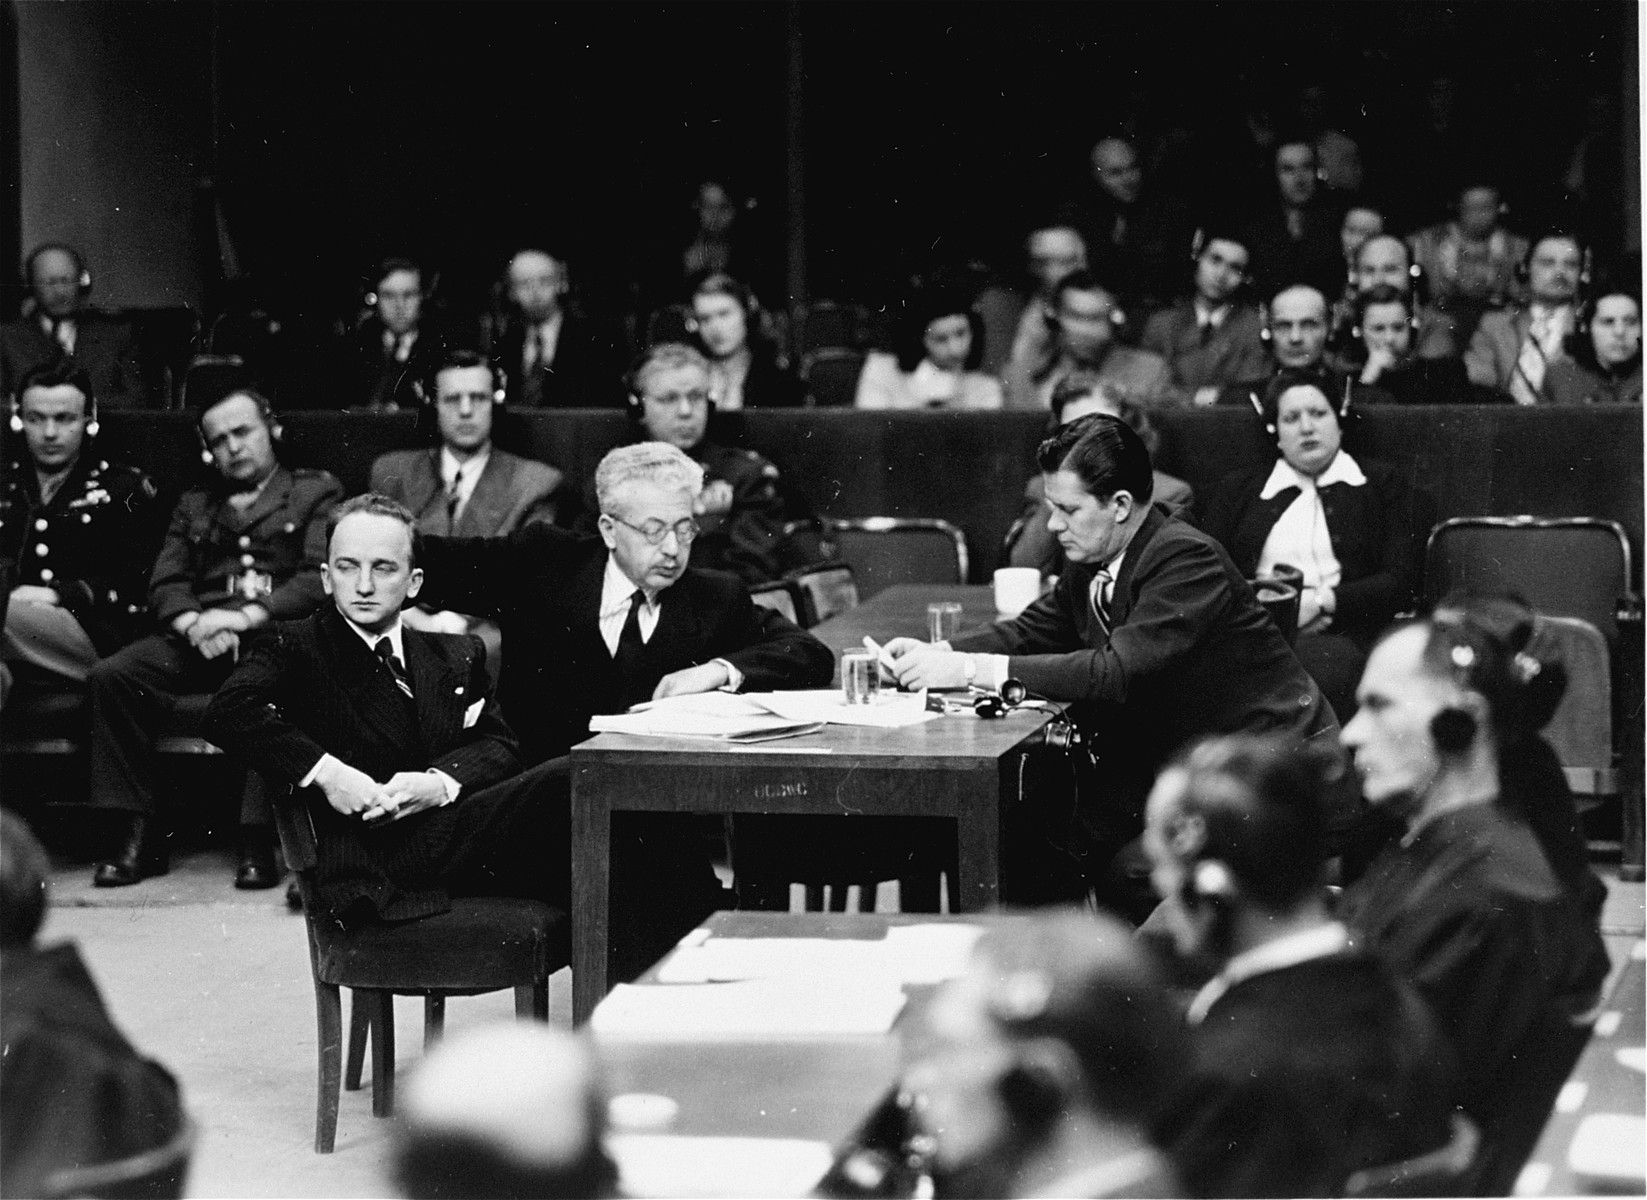 Members of the prosecution team at the Einsatzgruppen Trial.    Pictured from left to right are: Benjamin B. Ferencz, Arnost Horlick-Hockwald, and John E. Glancy.